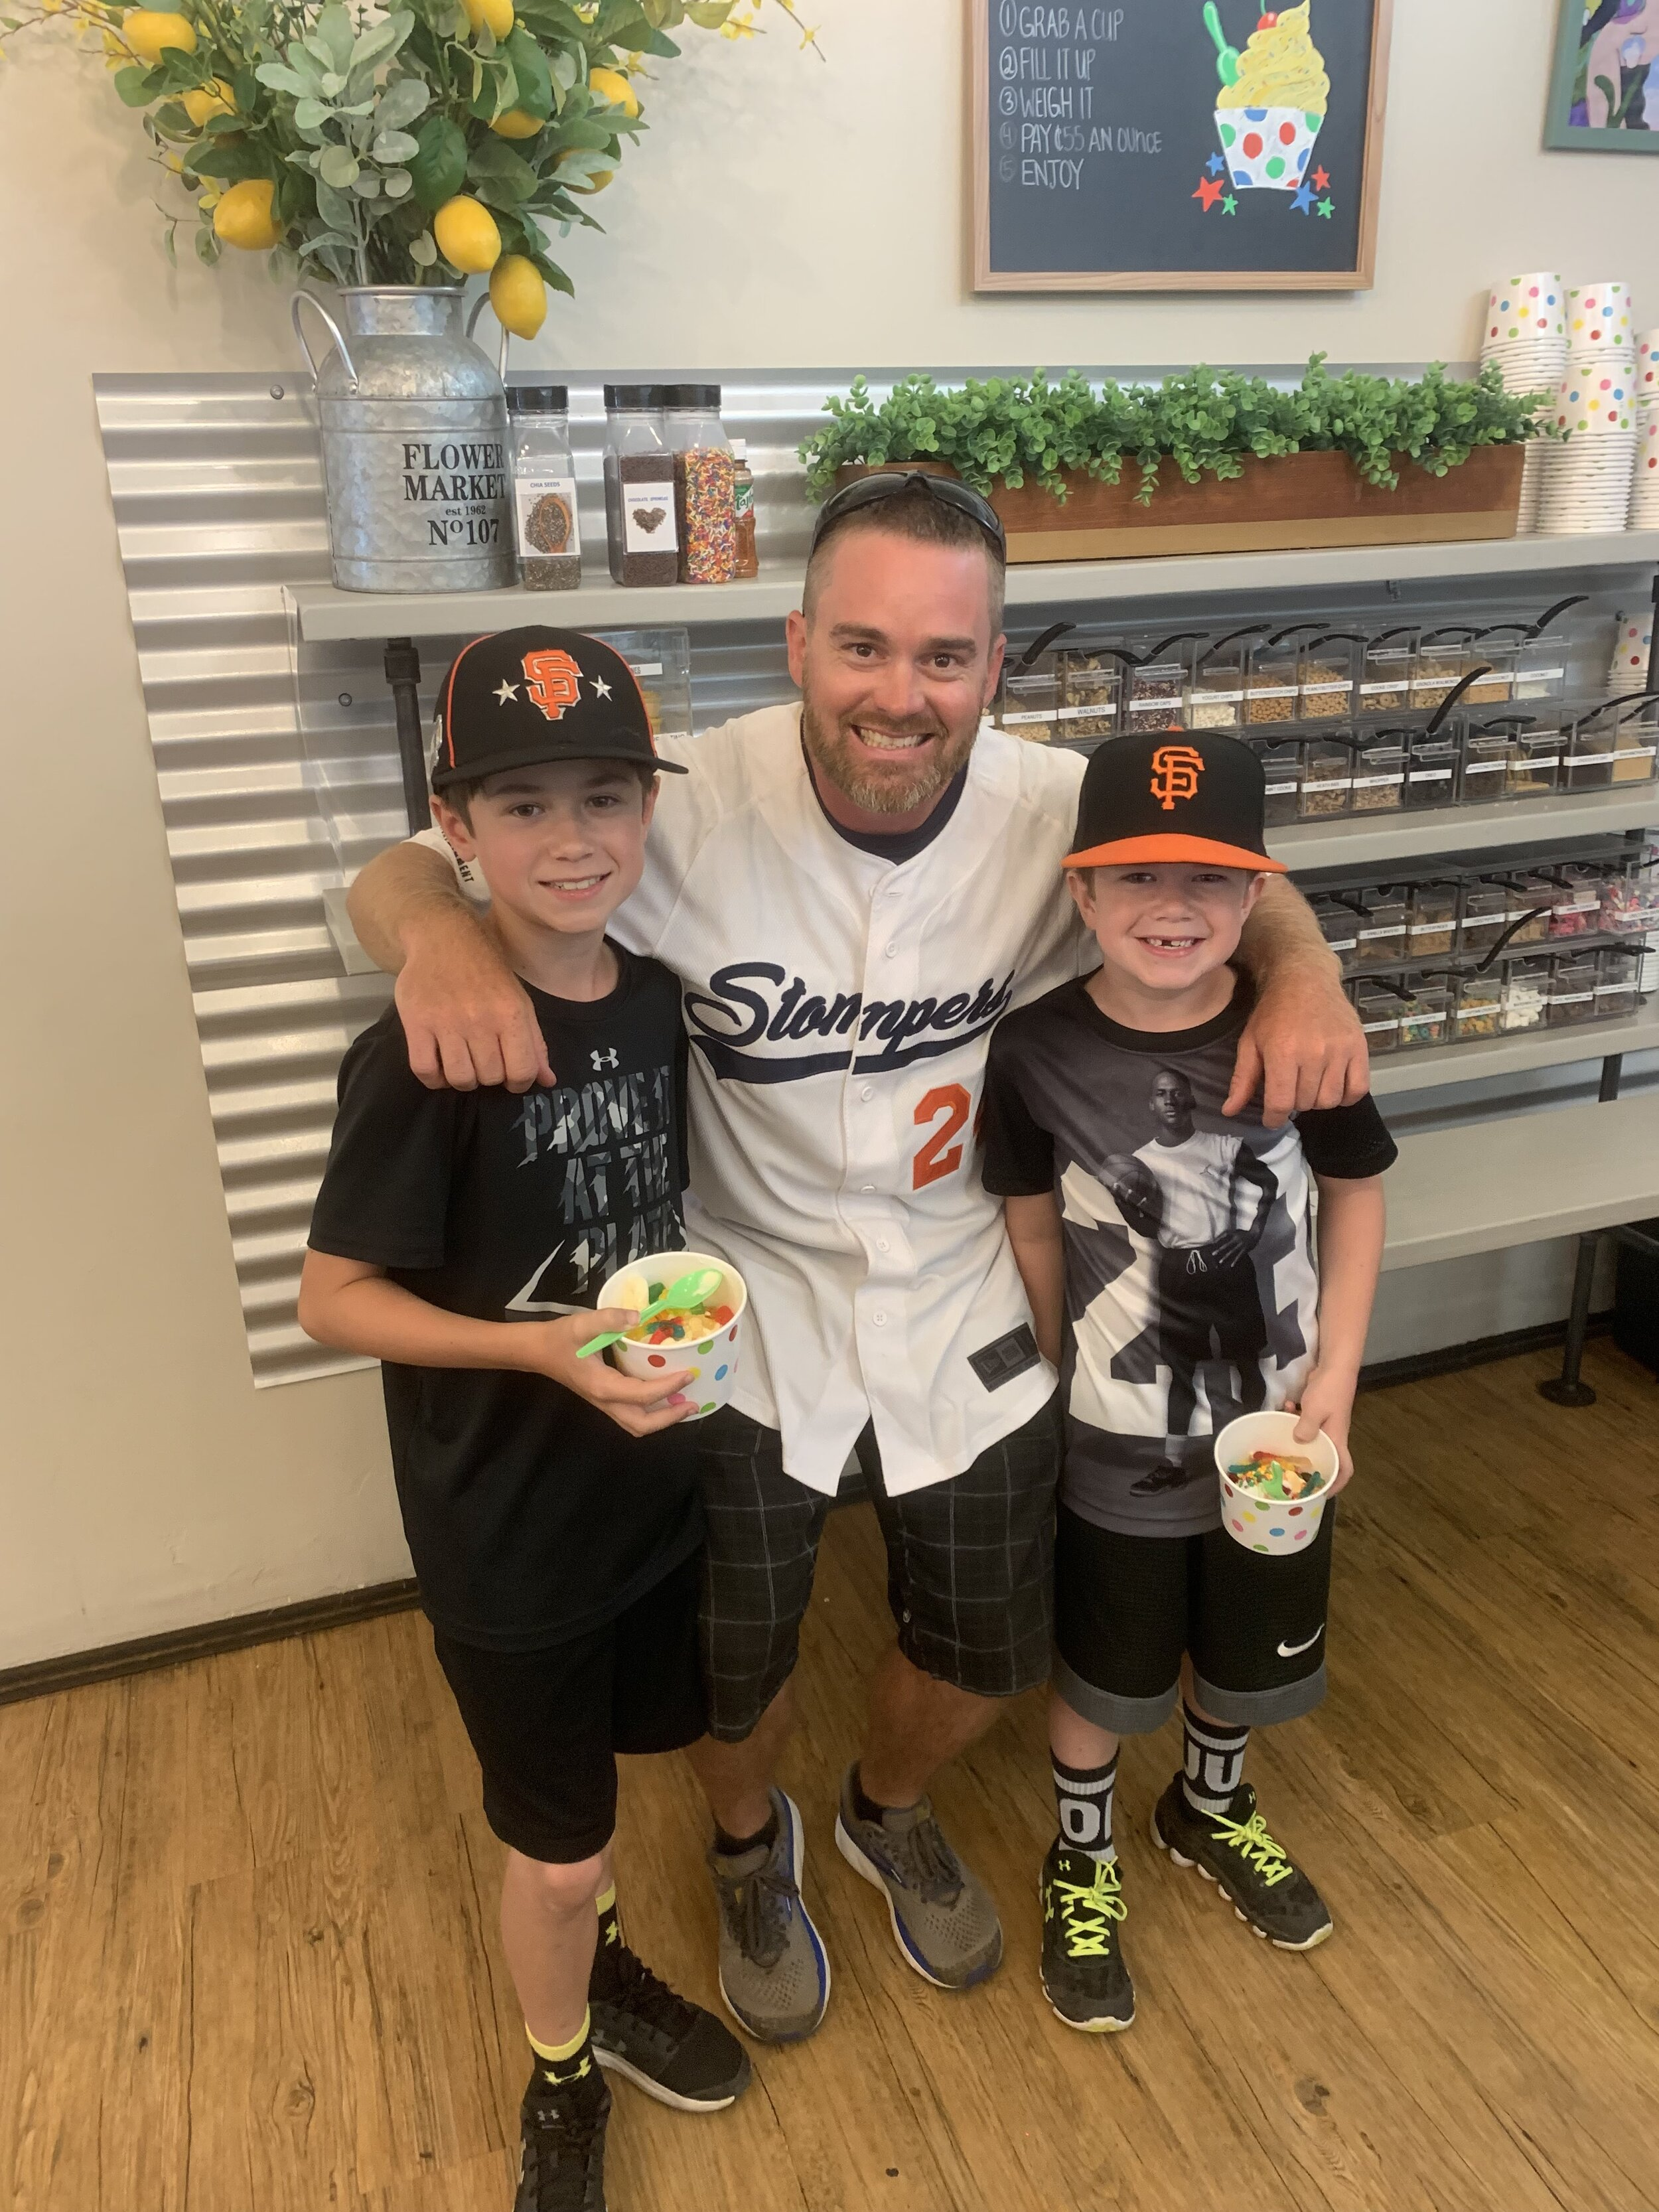 Manager Zack Pace posing with a few fans during a community event this past Summer.